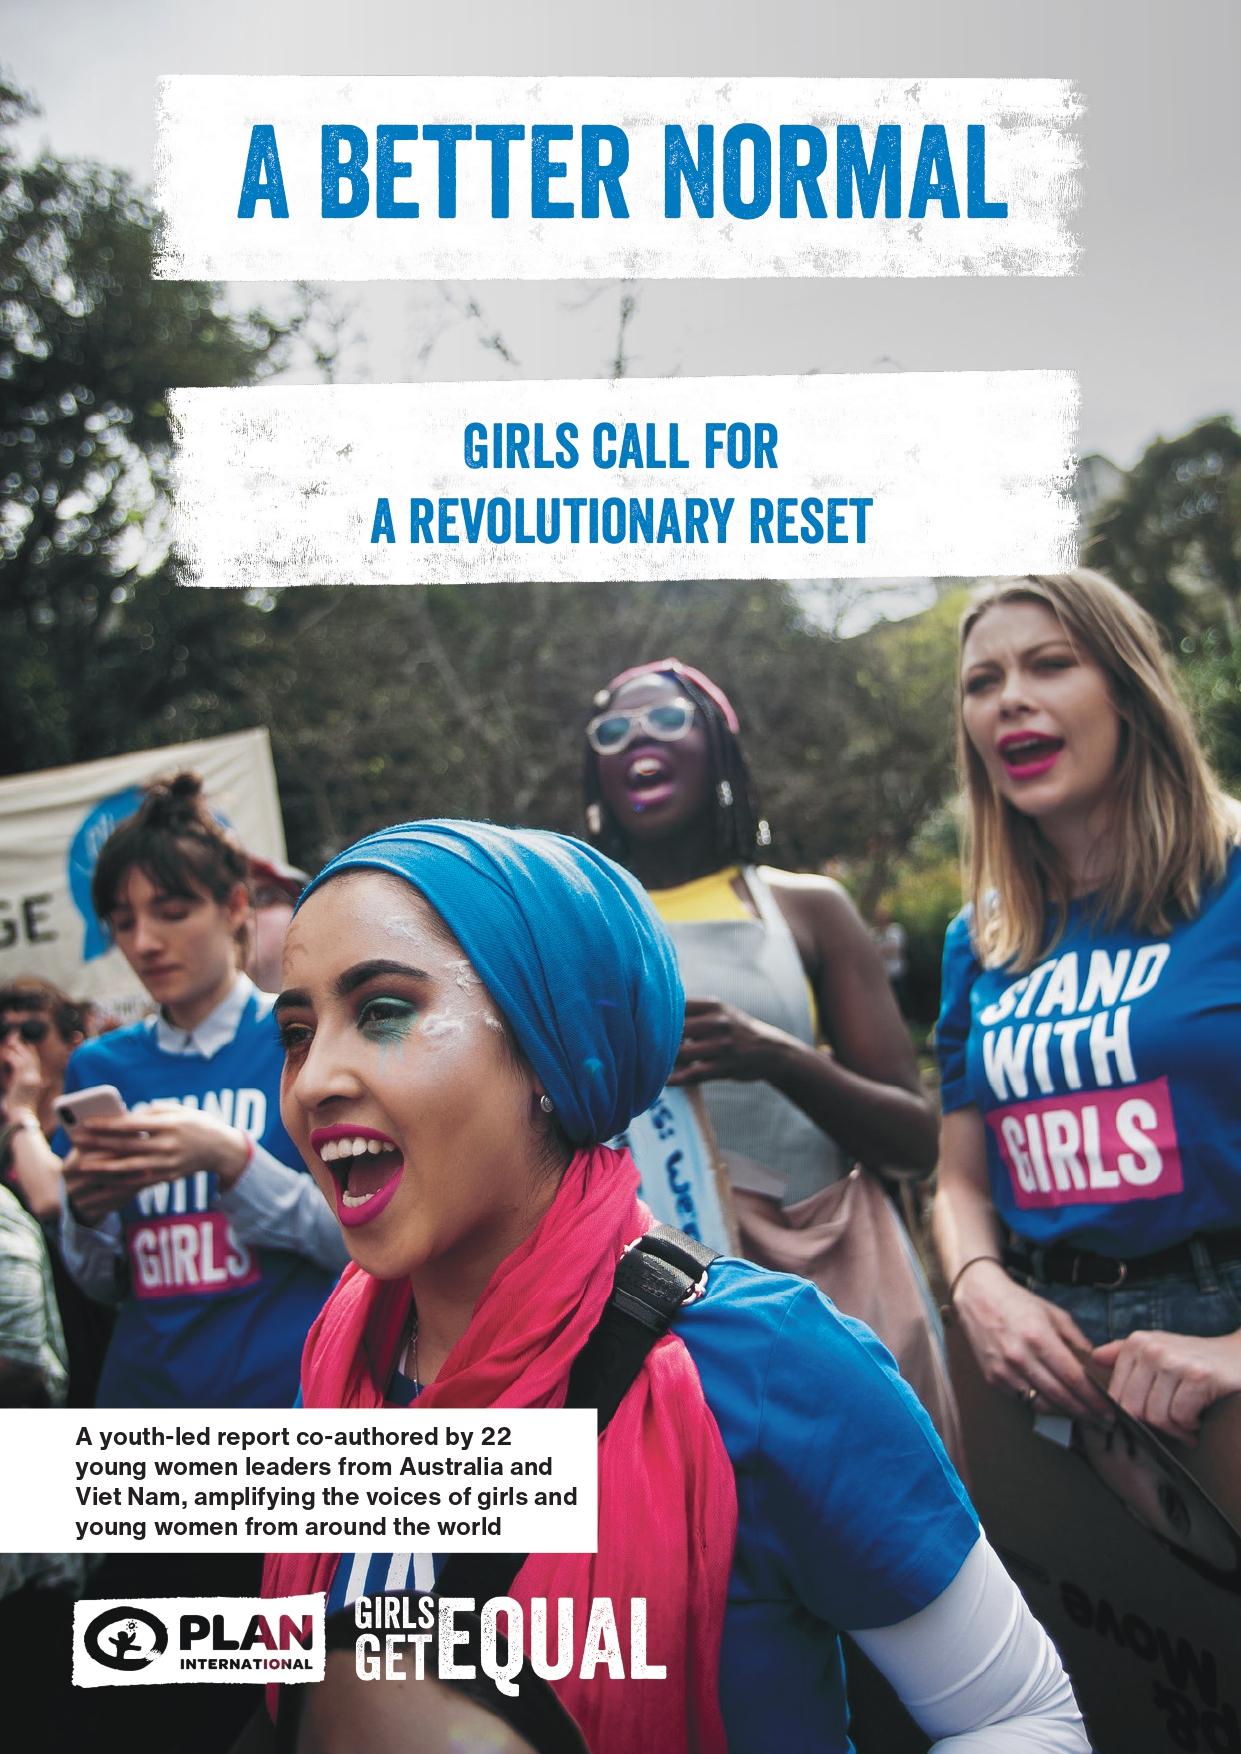 A Better Normal: Girls call for a revolutionary reset